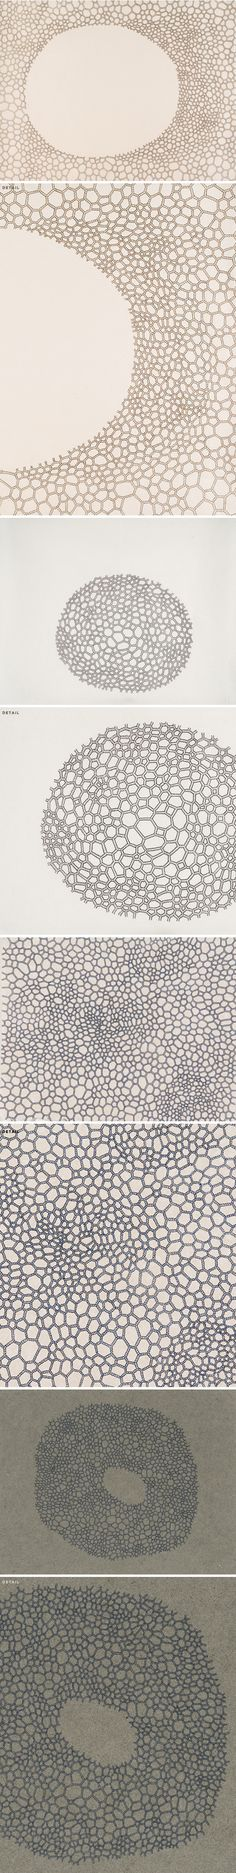 ink drawings on hand made paper by jeanne heifetz